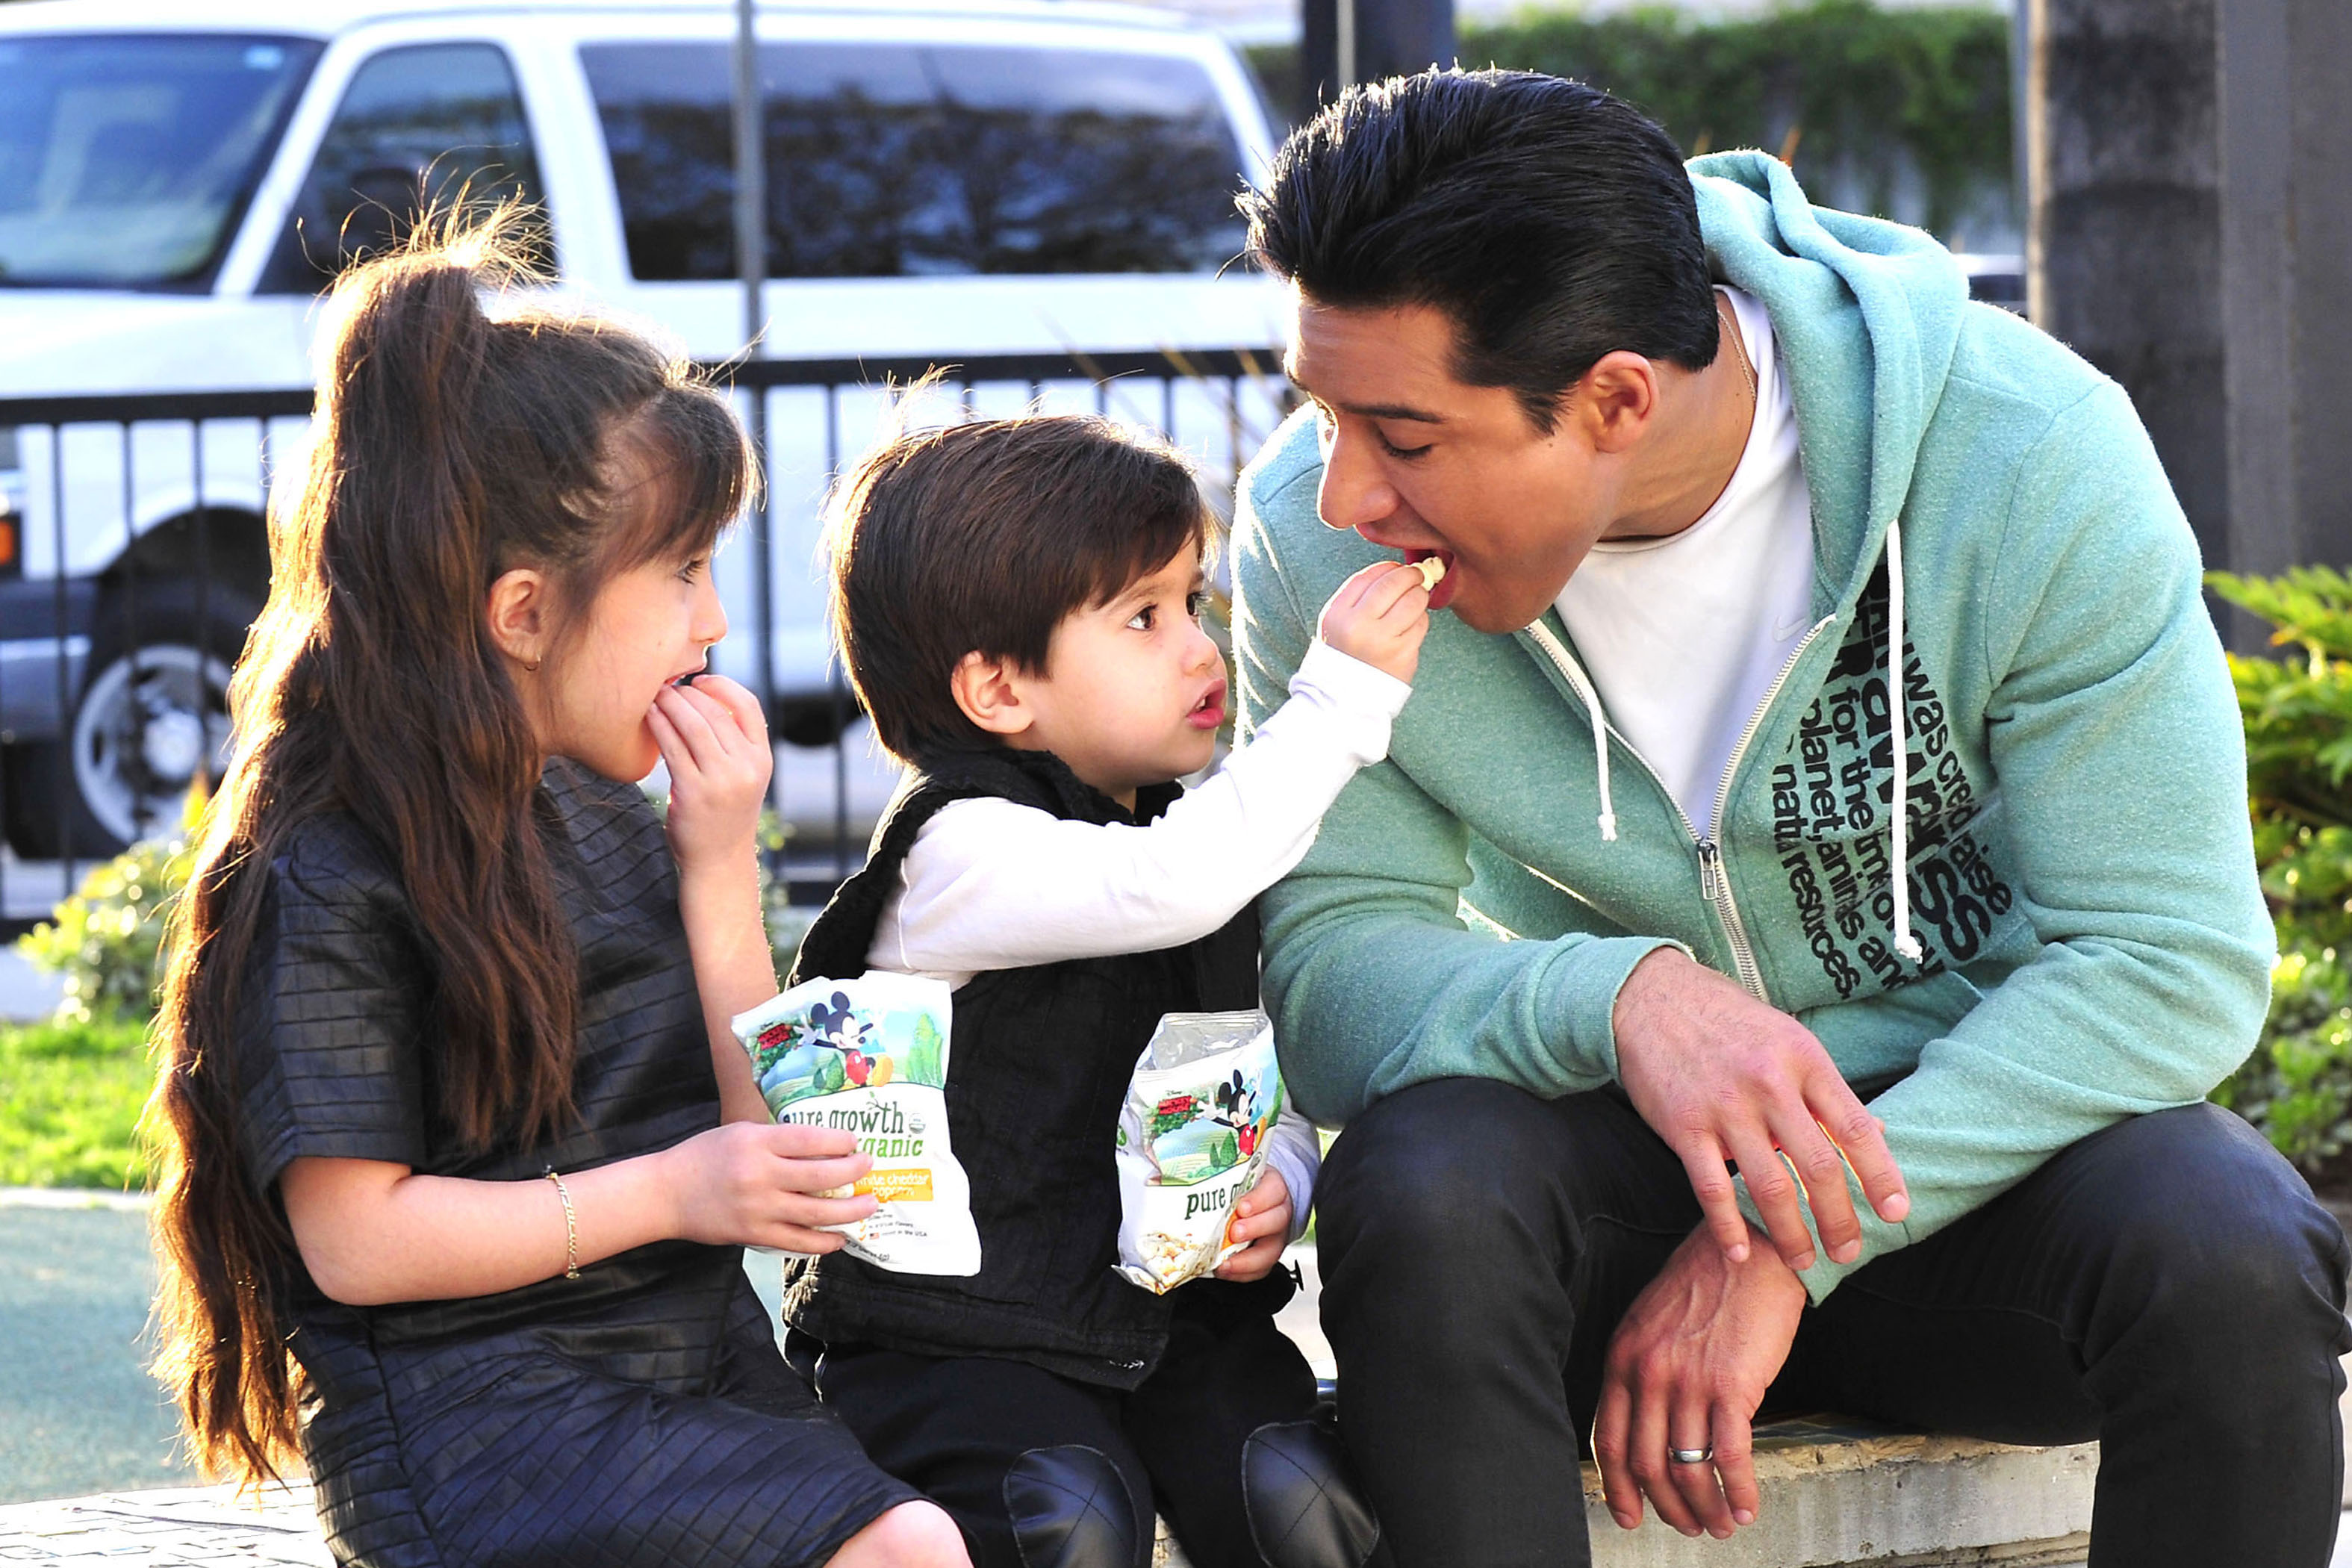 Mario Lopez Has Fun While Taking A Popcorn Break With His Cute Kids On The Set Of Extra